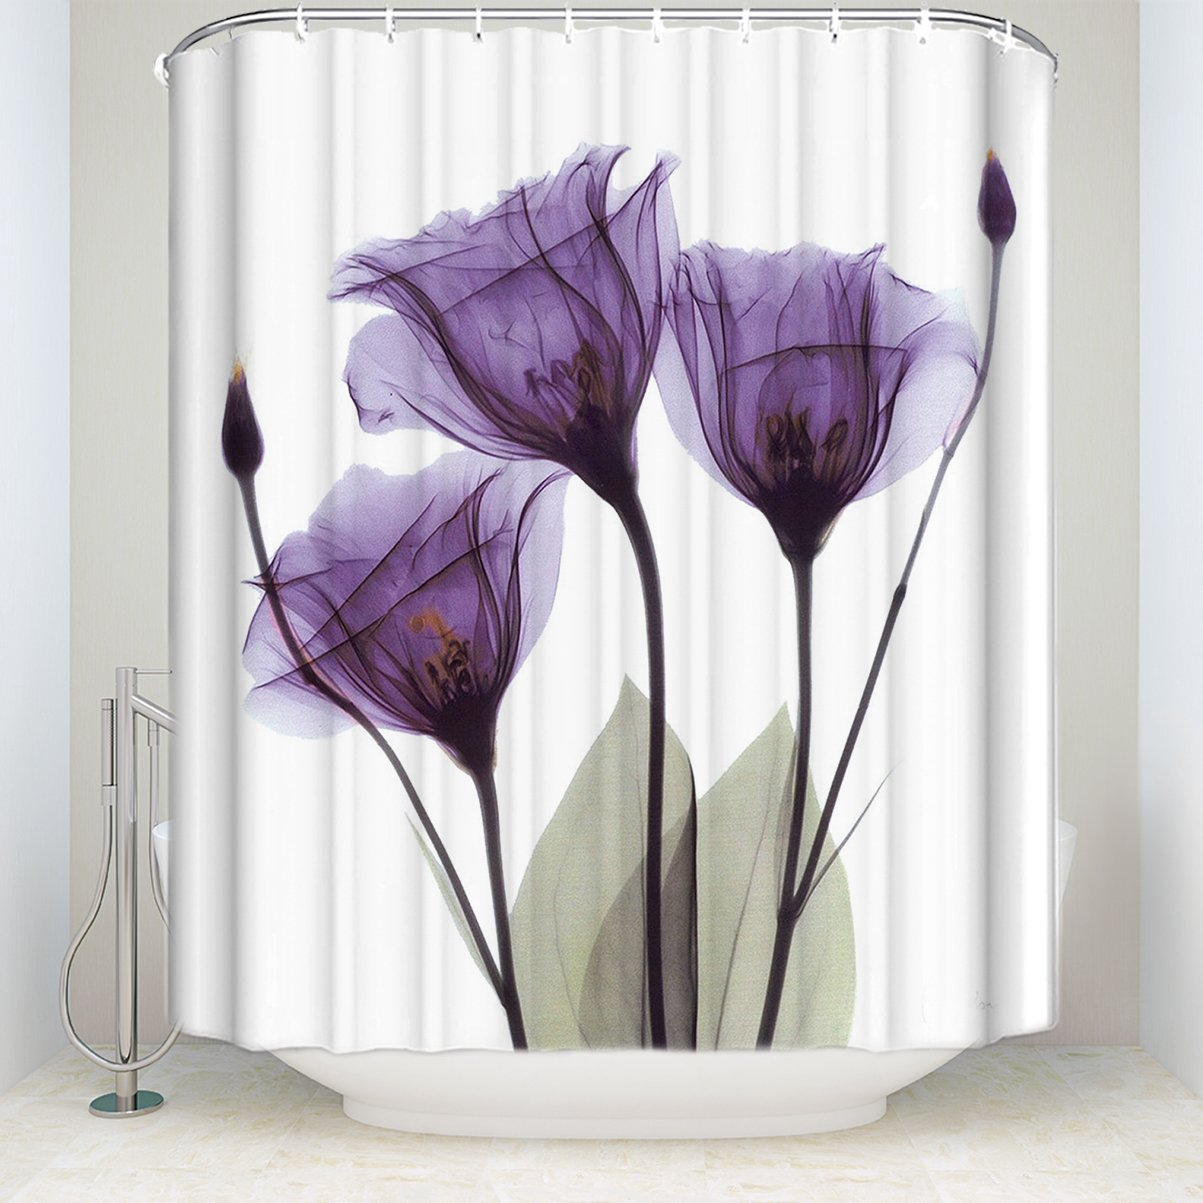 KAROLA Shower Curtain, Lavender Hope Waterproof and Anti Mildew Fabric Bathroom Shower Curtains, 72W by 72H